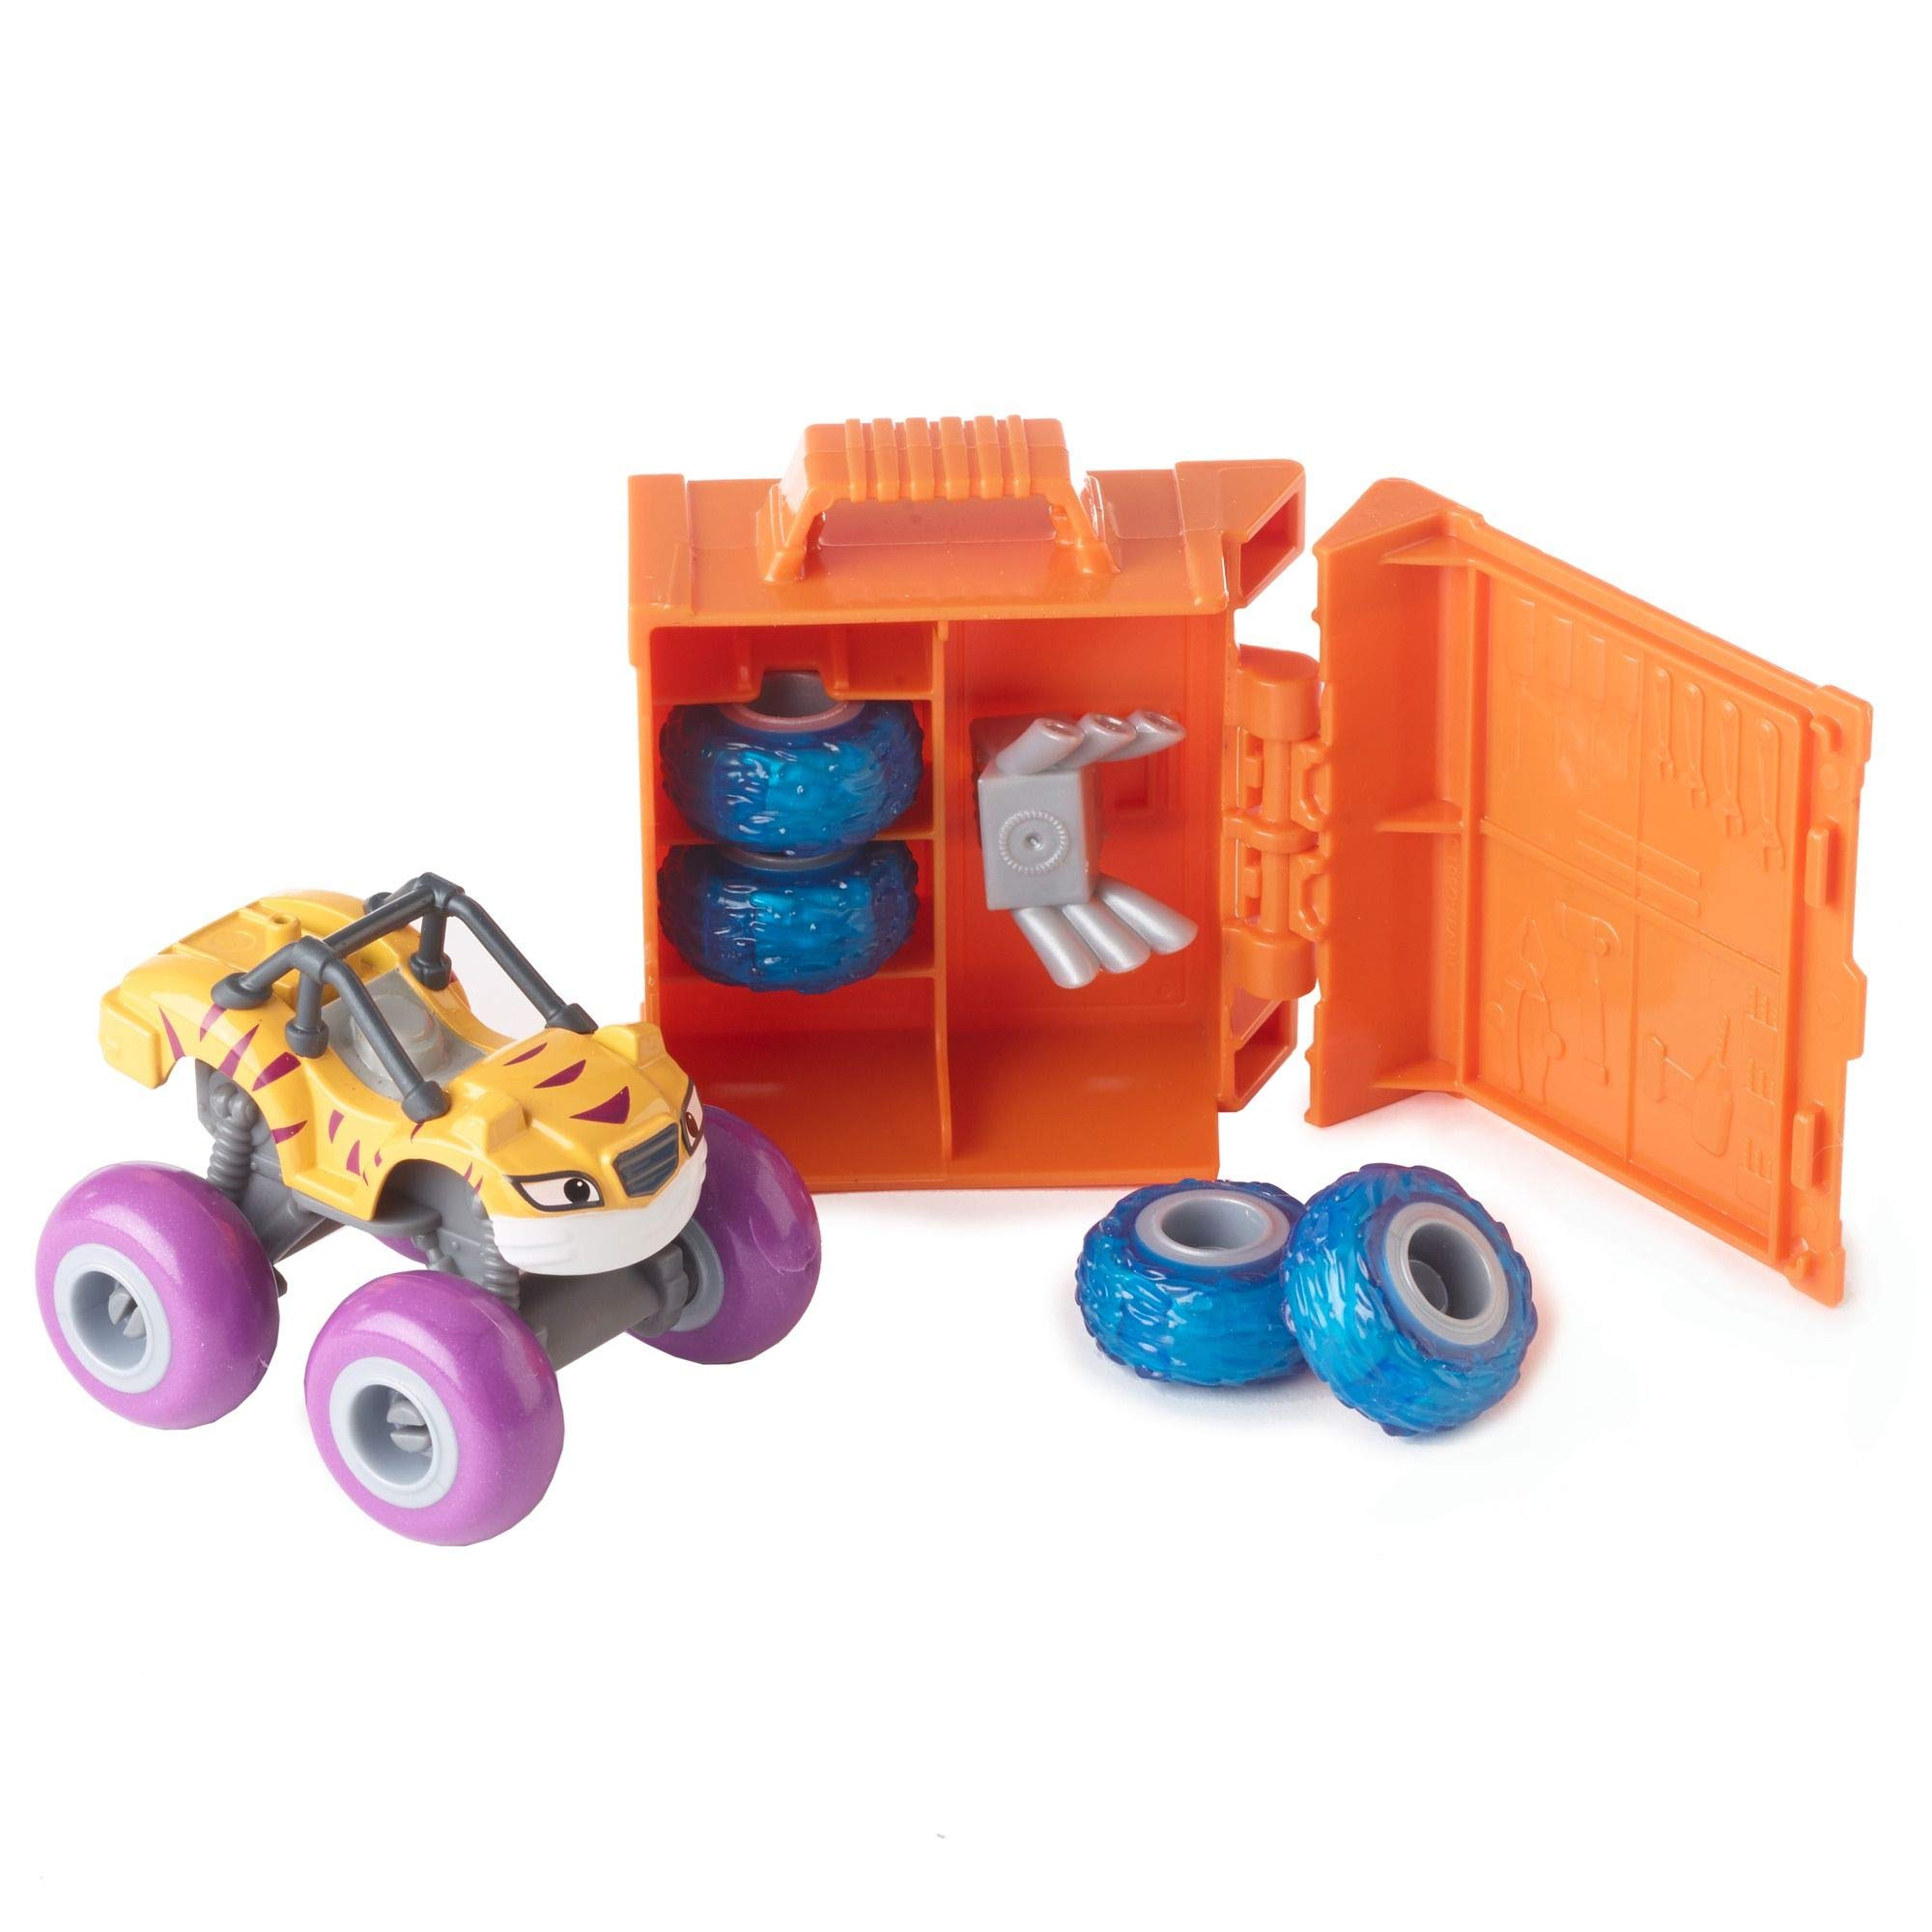 Fisher-Price Nickelodeon Blaze & the Monster Machines Tune-Up Tires, Stripes by Fisher-Price (Image #2)